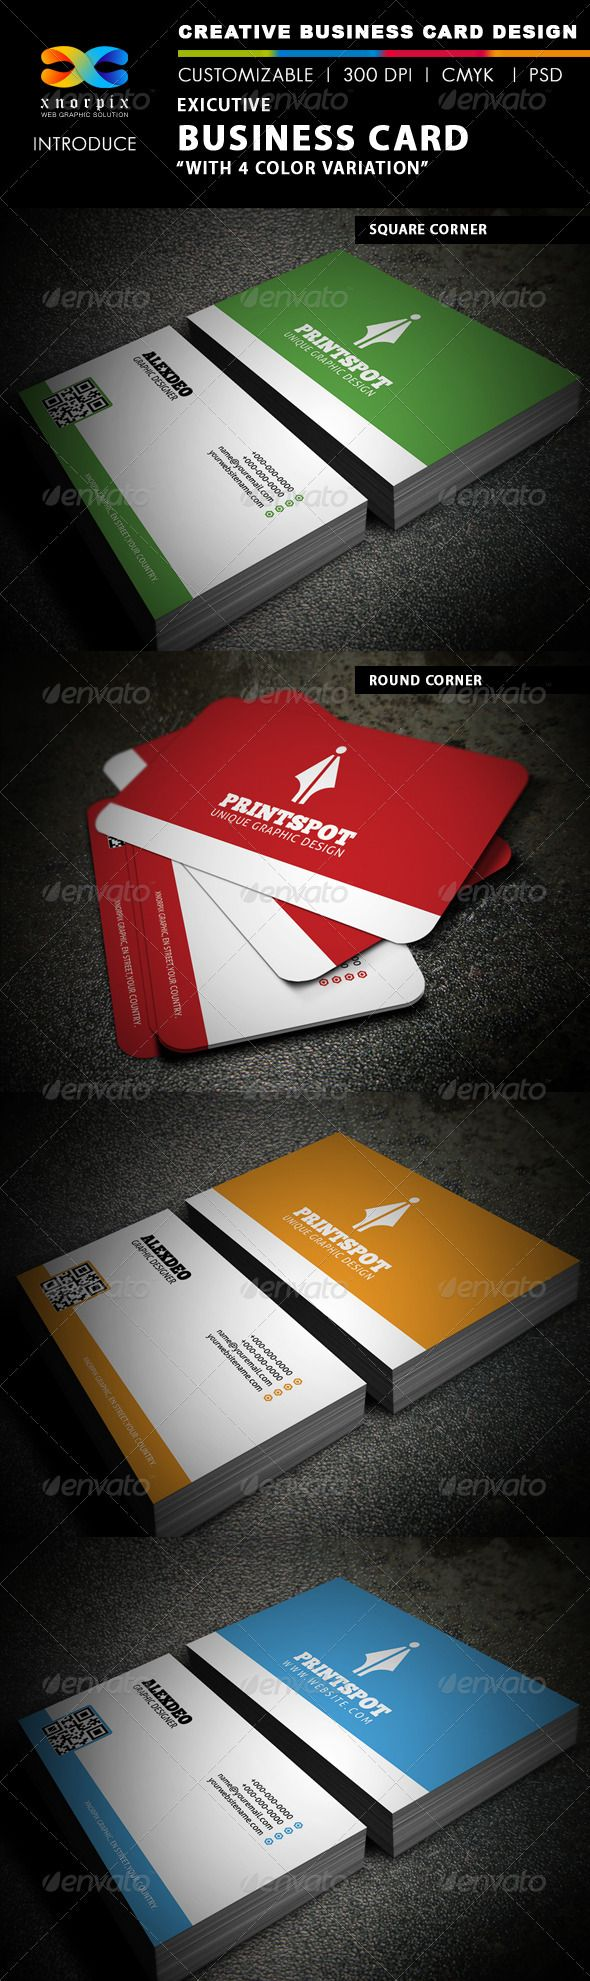 Executive Business Card Projects To Try Pinterest